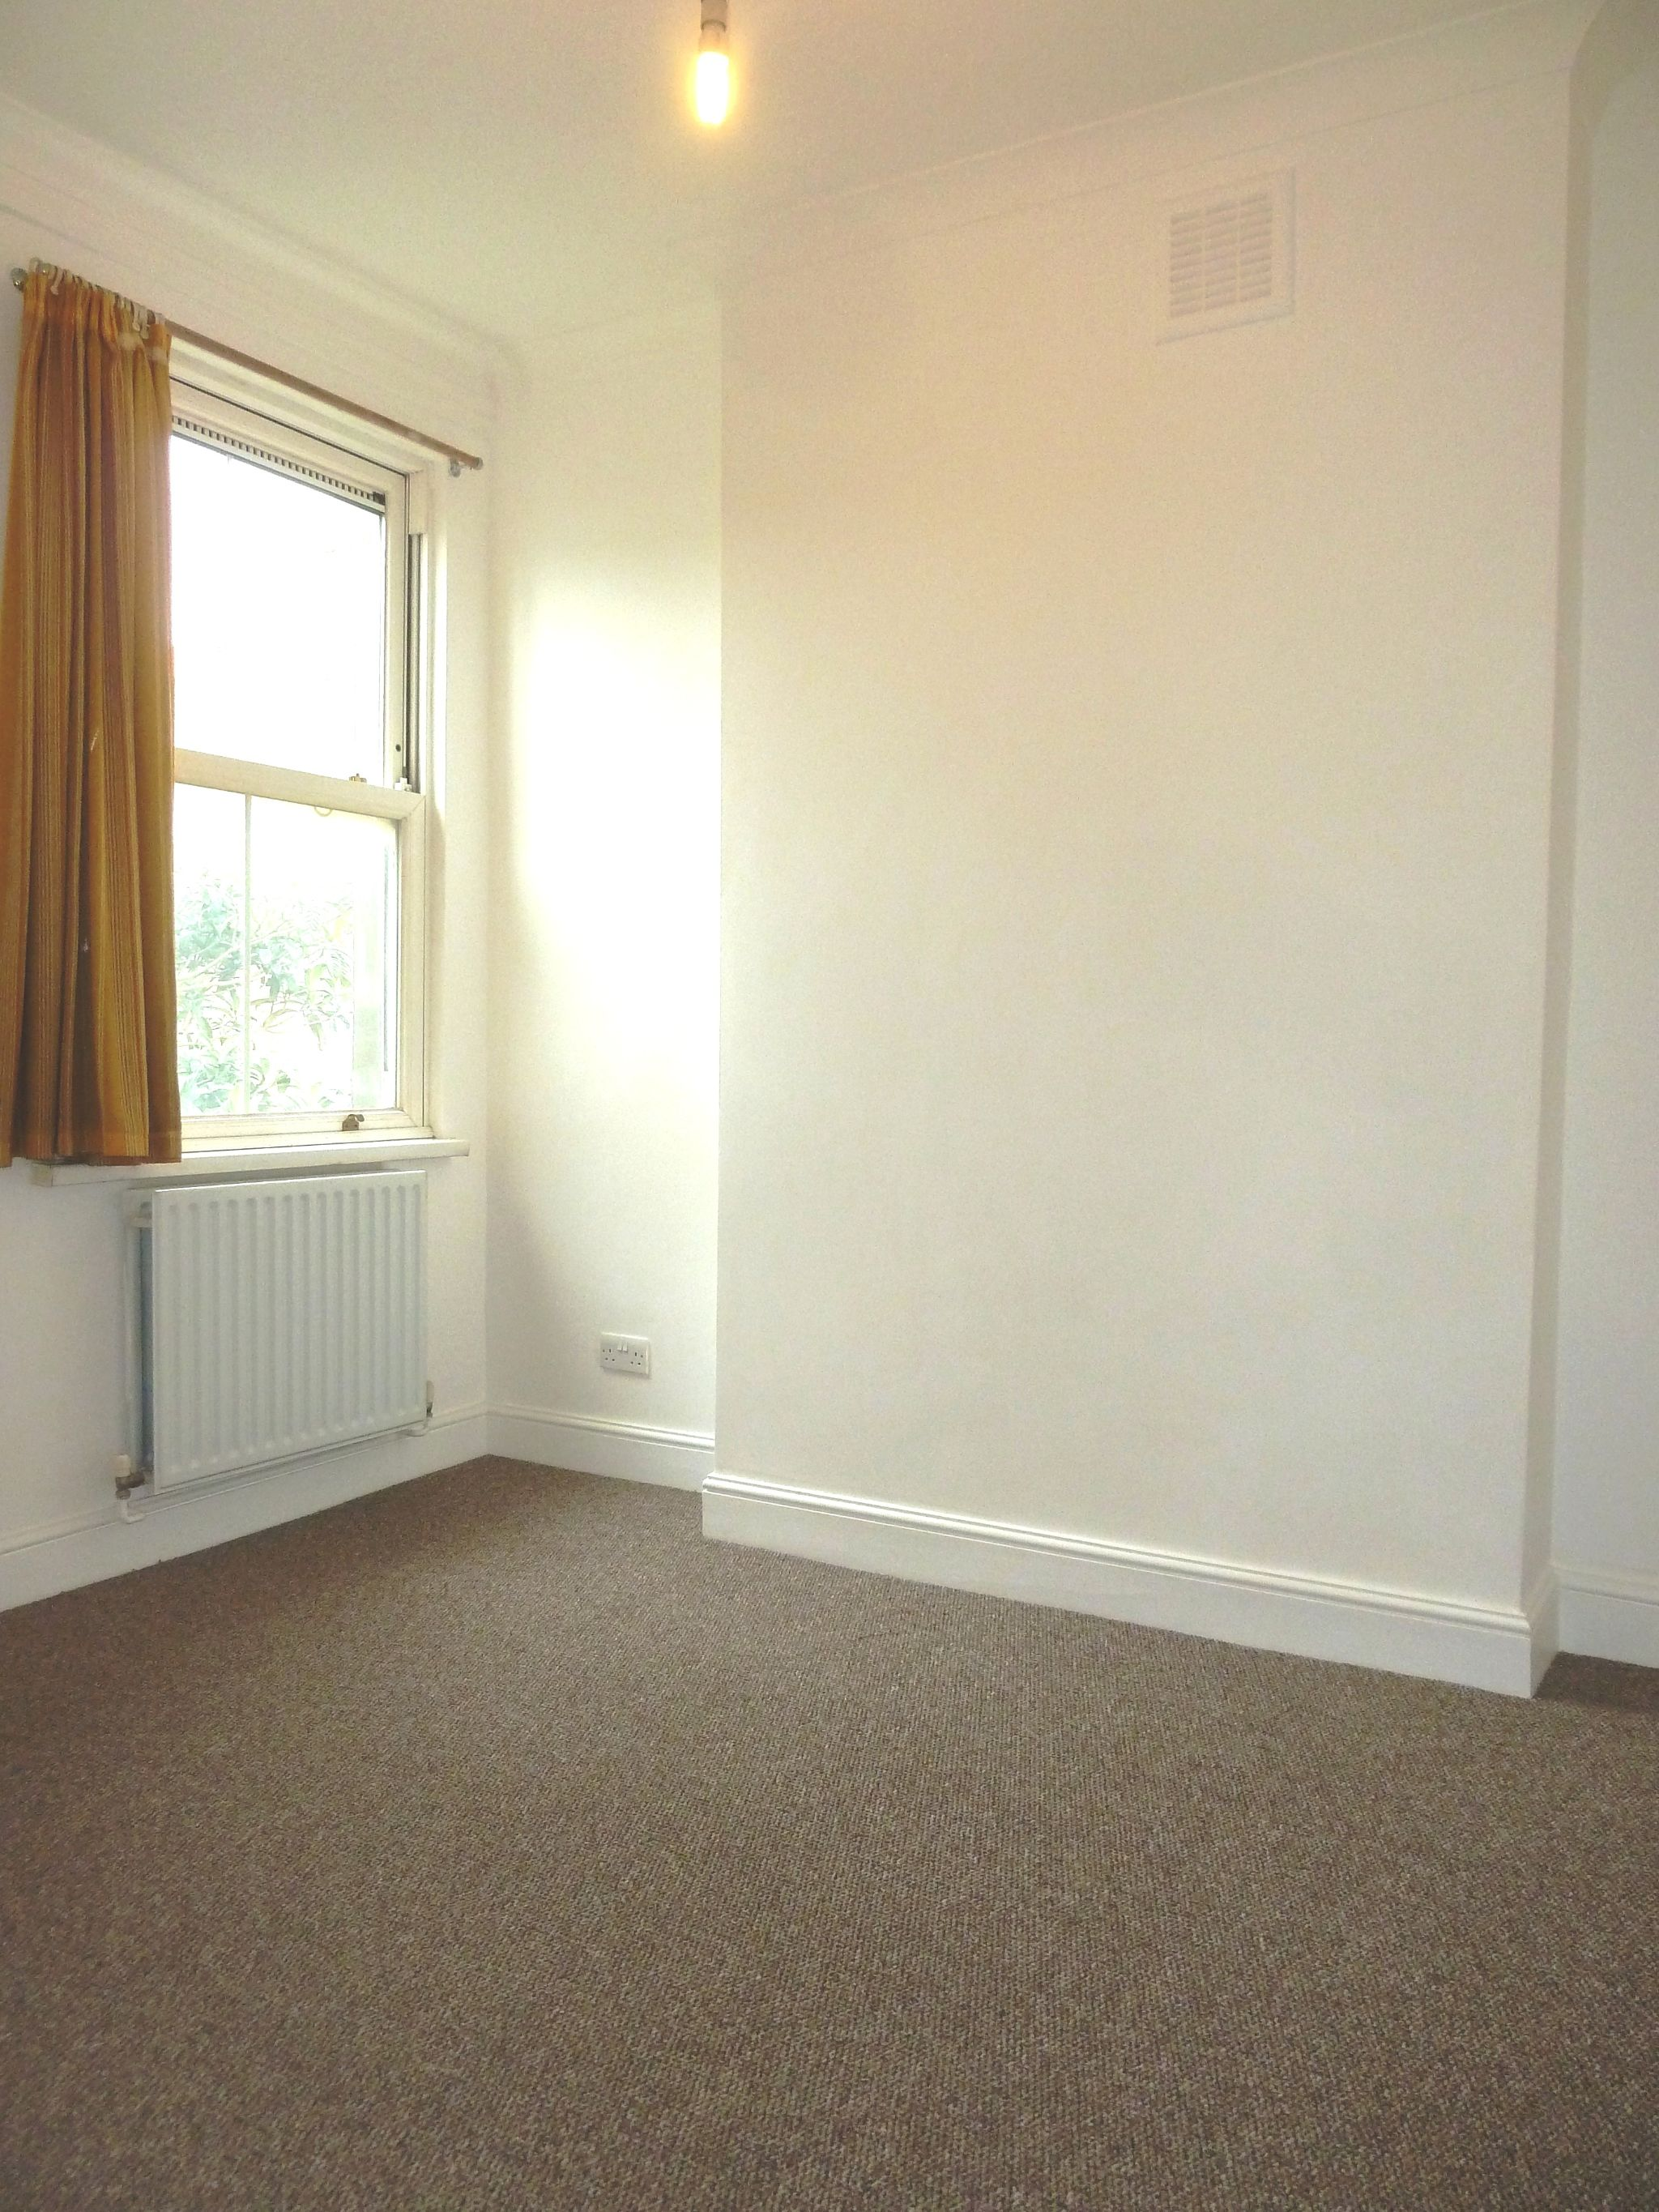 1 bedroom flat flat/apartment To Let in London - Bedroom